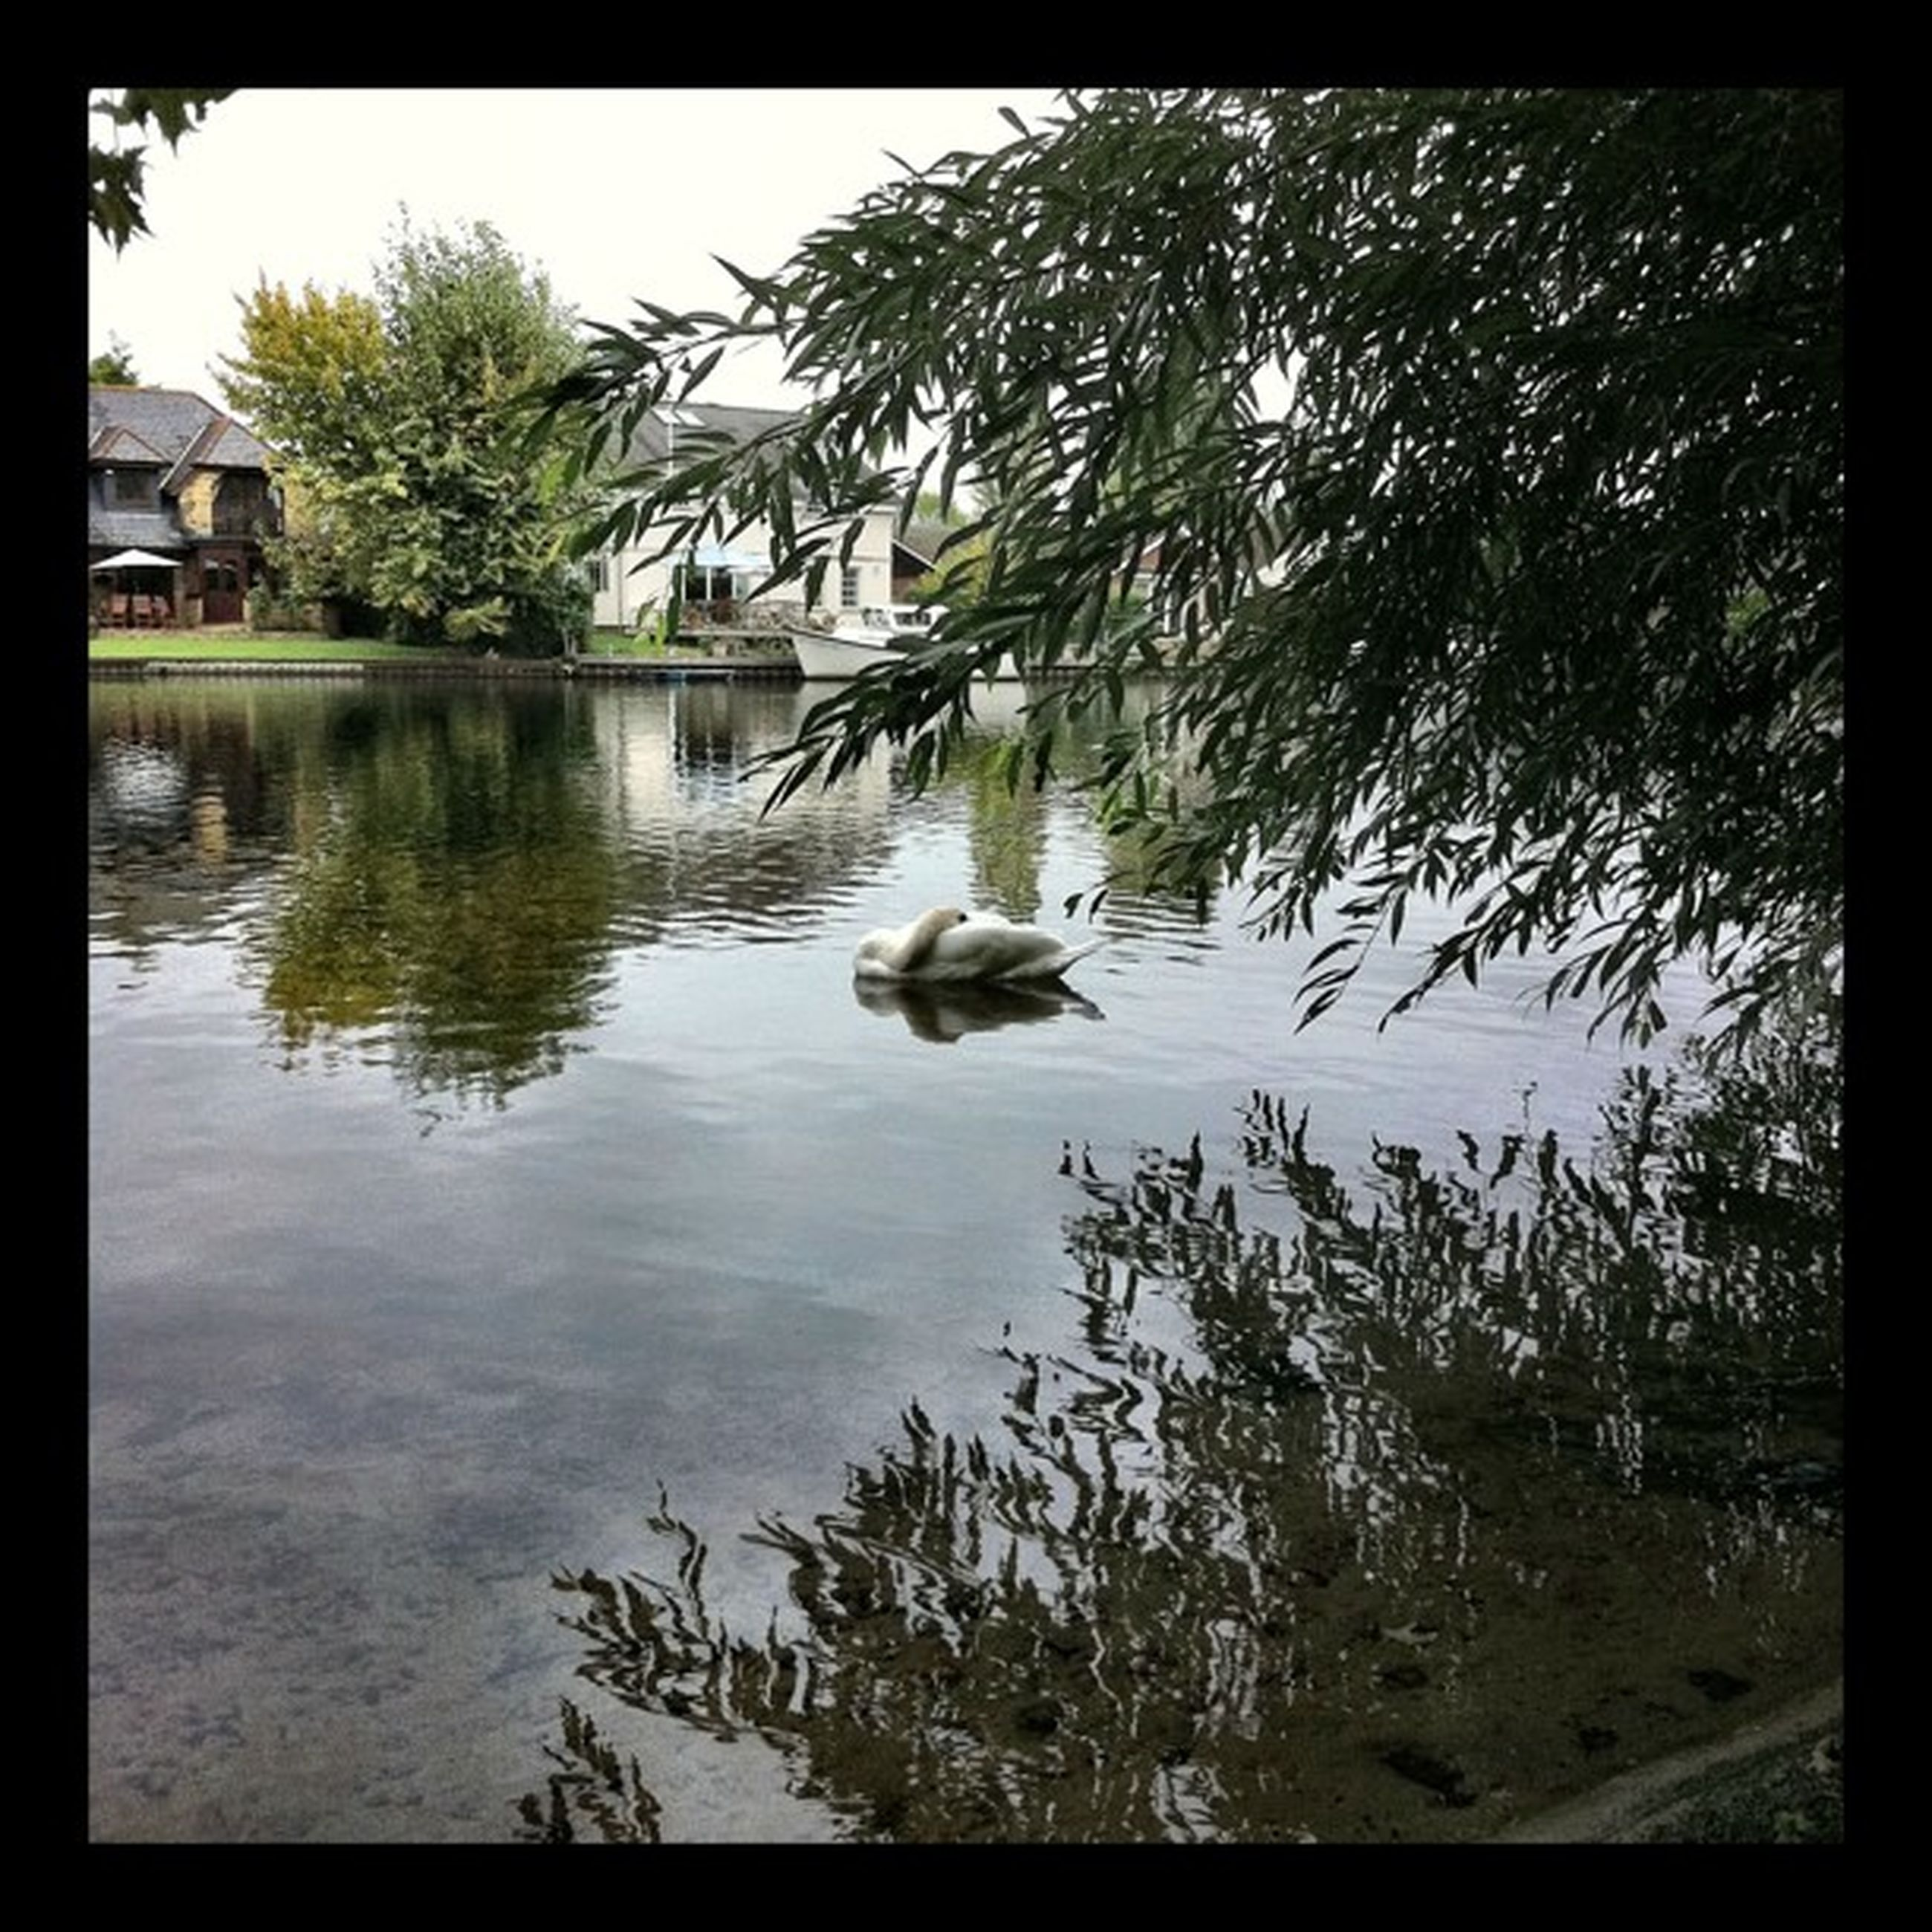 transfer print, auto post production filter, animal themes, bird, water, tree, wildlife, one animal, animals in the wild, lake, reflection, nature, pond, river, day, waterfront, swimming, outdoors, plant, duck